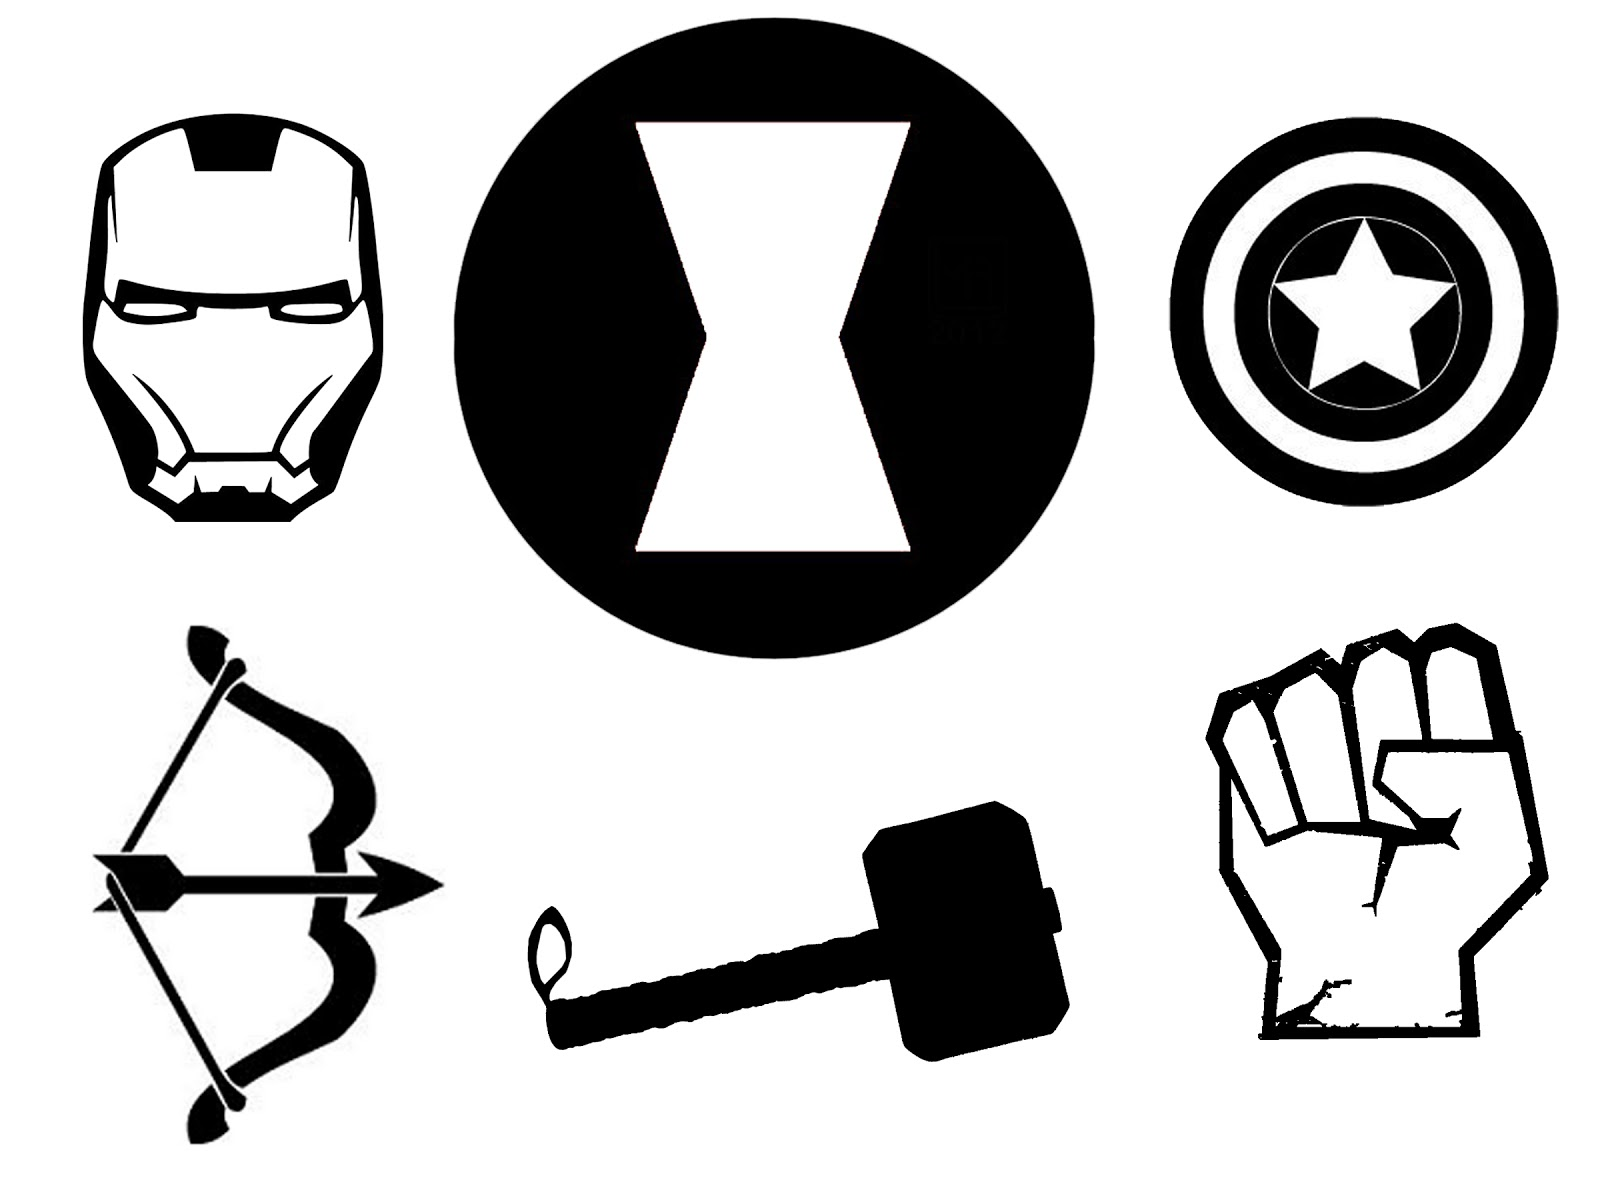 Hawkeye logo marvel clipart png black and white library 17 Best images about clip art on Pinterest   Vinyl decals ... png black and white library